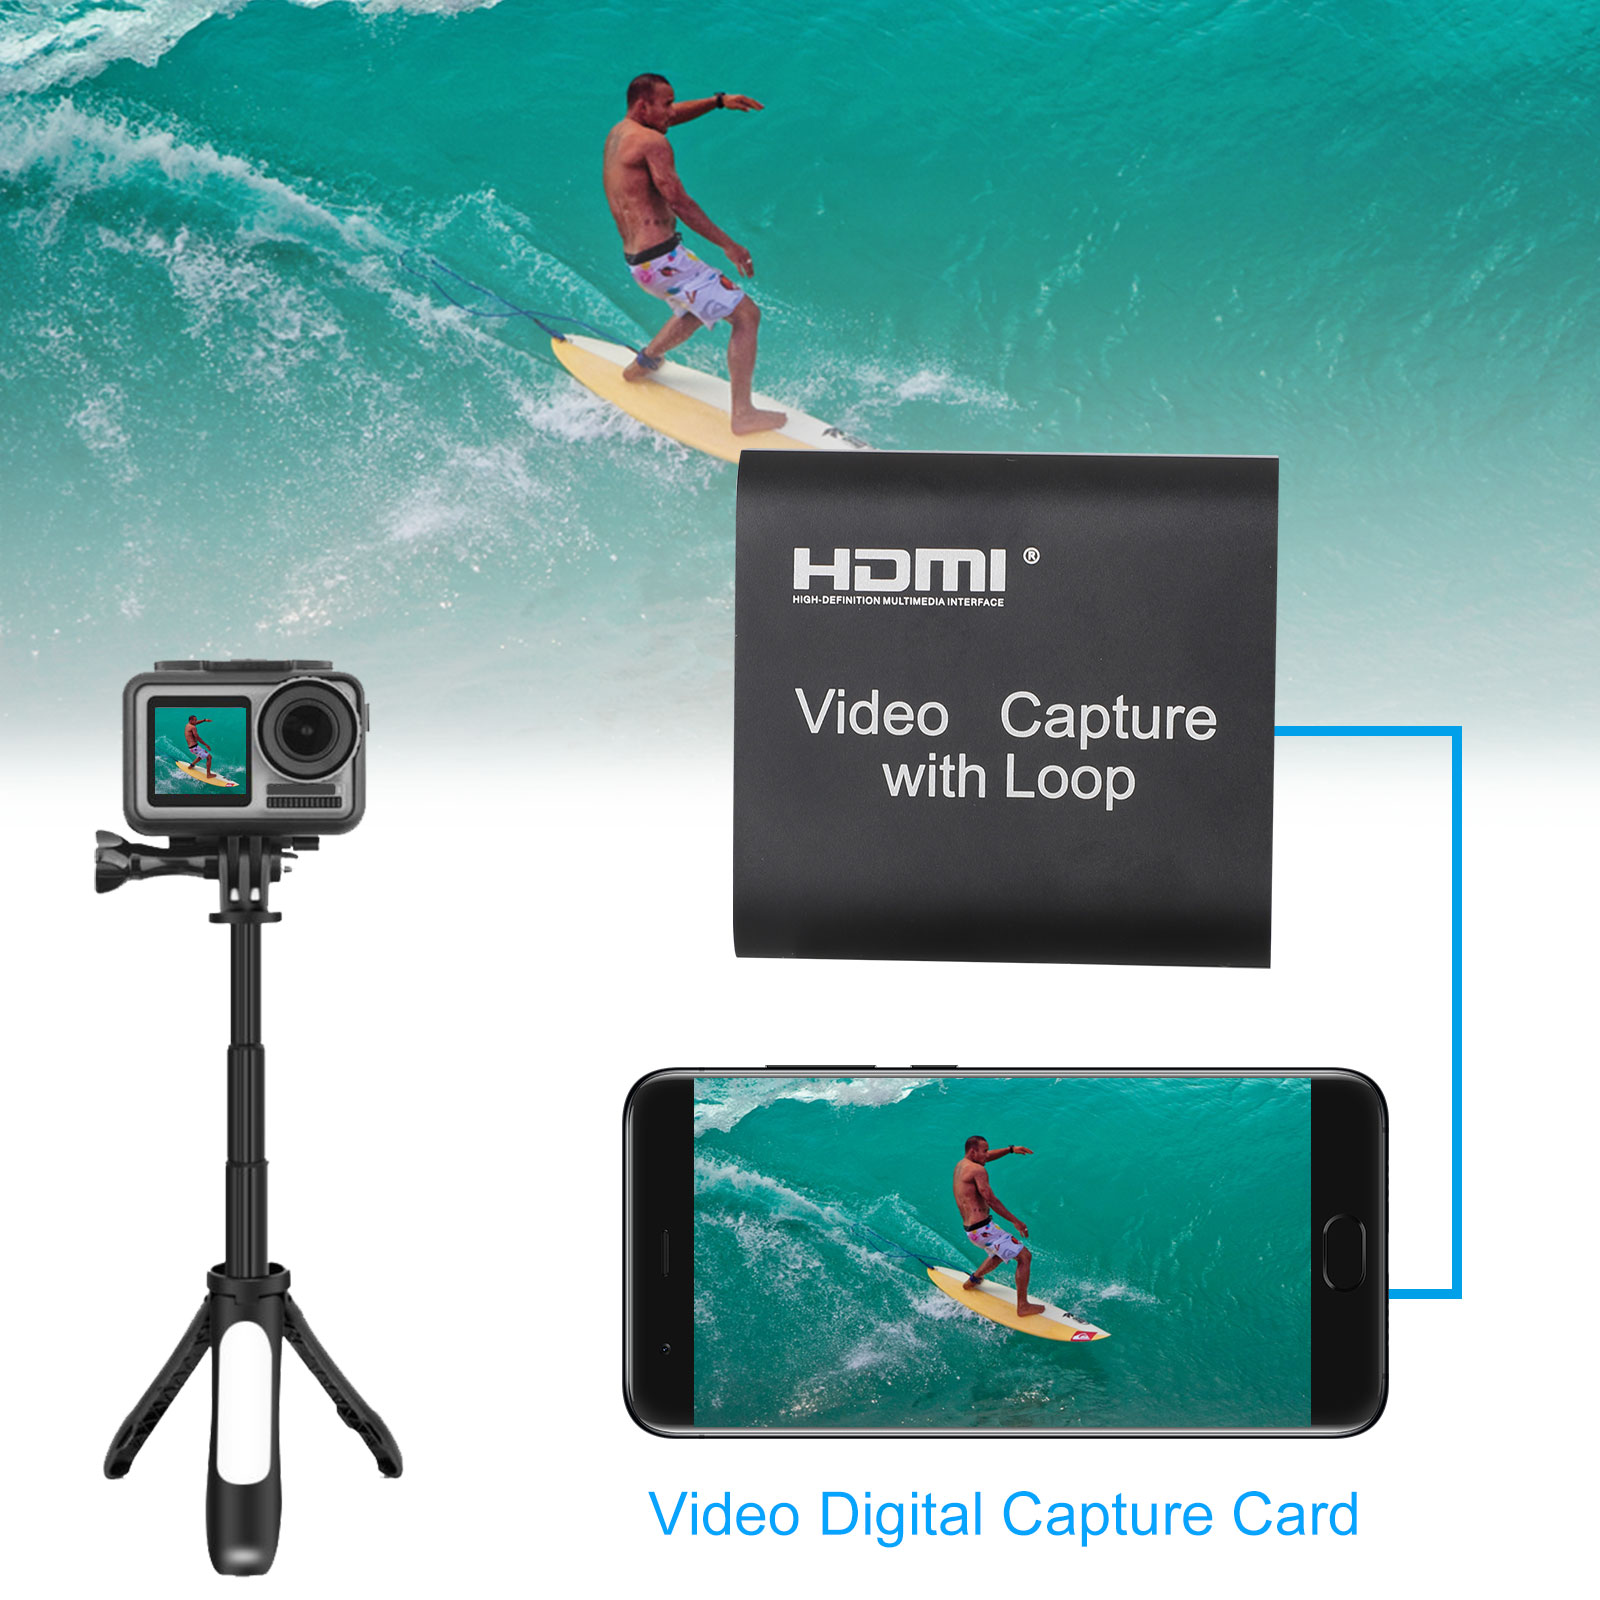 1080p-60fps-HDMI-Video-Digtal-Capture-Card-Recorder-for-Streaming-Meeting-Game thumbnail 4